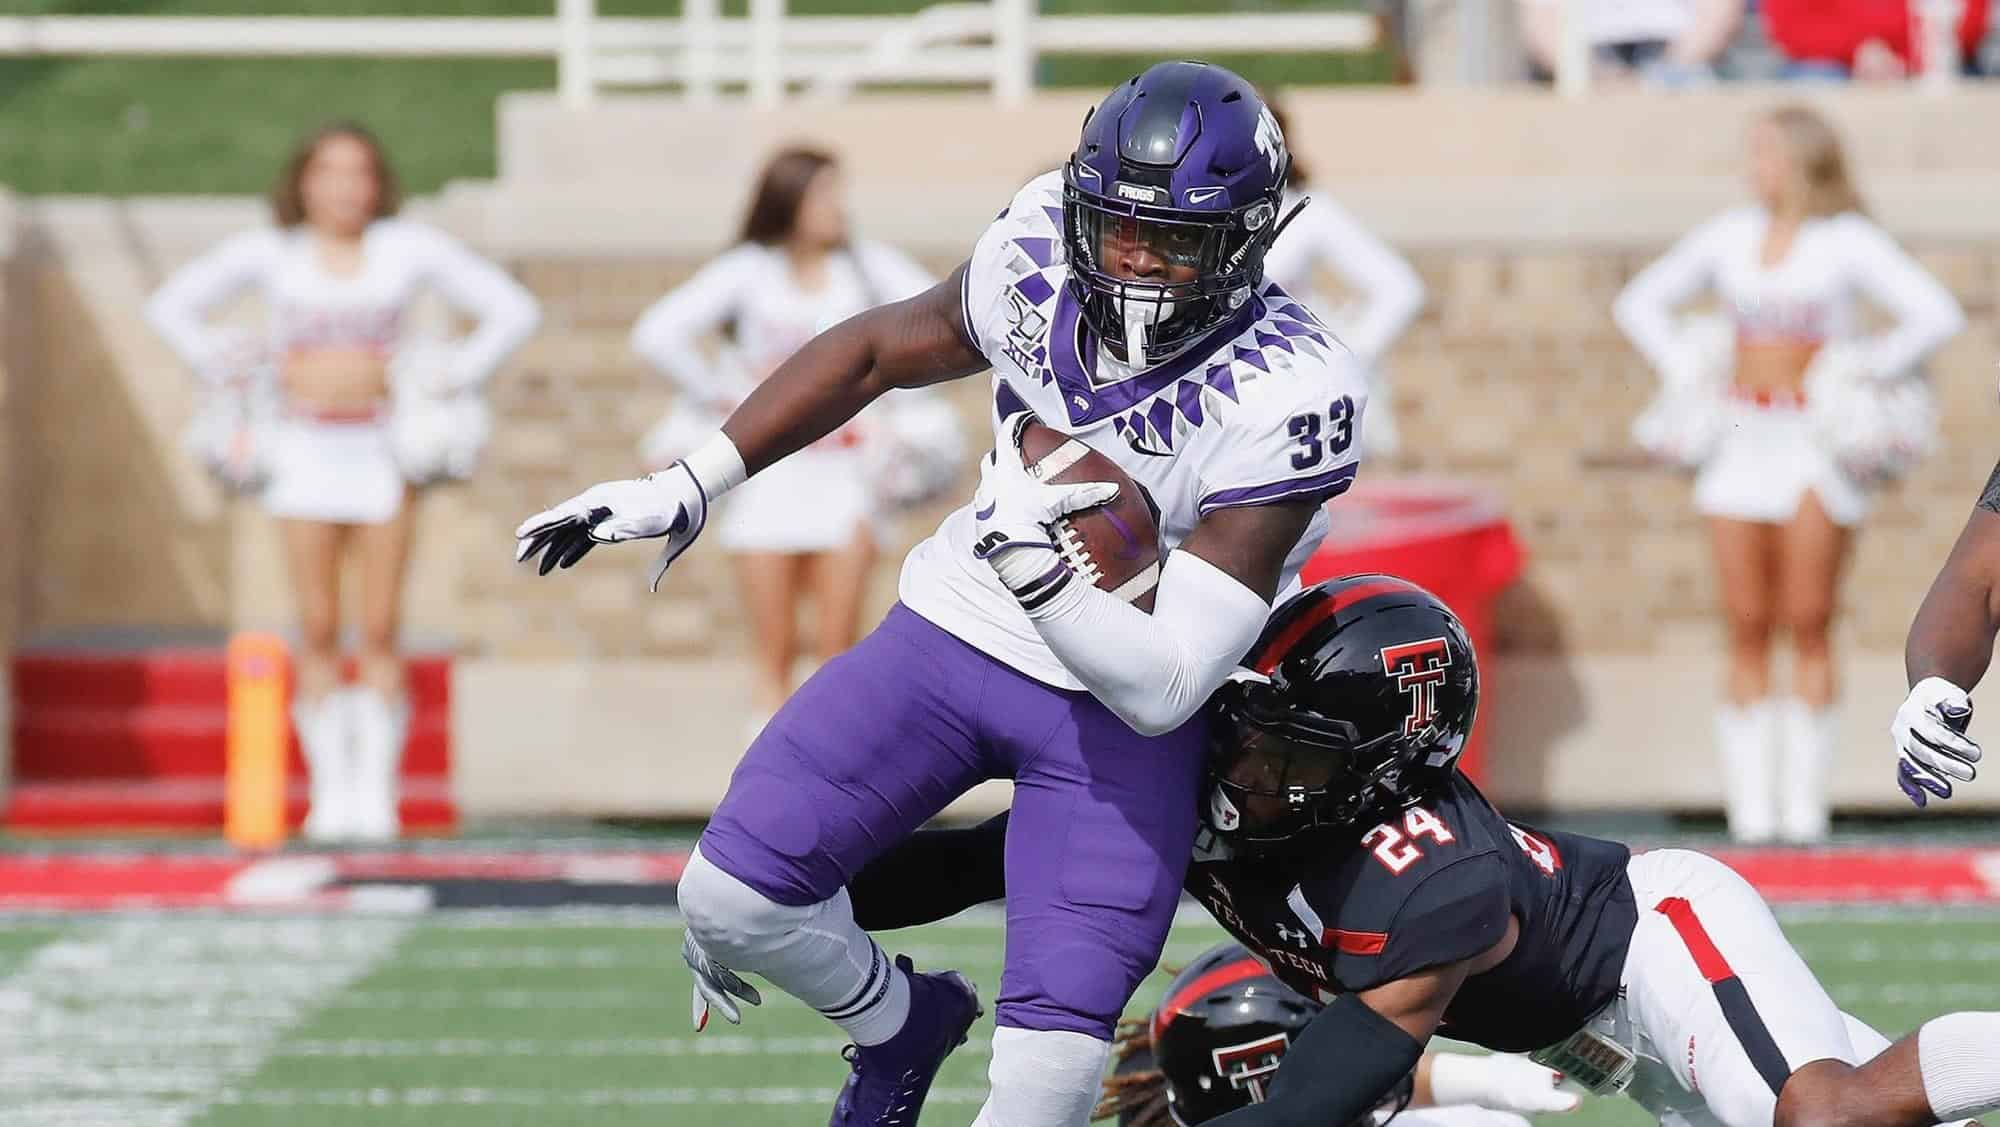 TCU RB Sewo Olonilua equipped to rise up draft boards in the 2020 NFL Draft